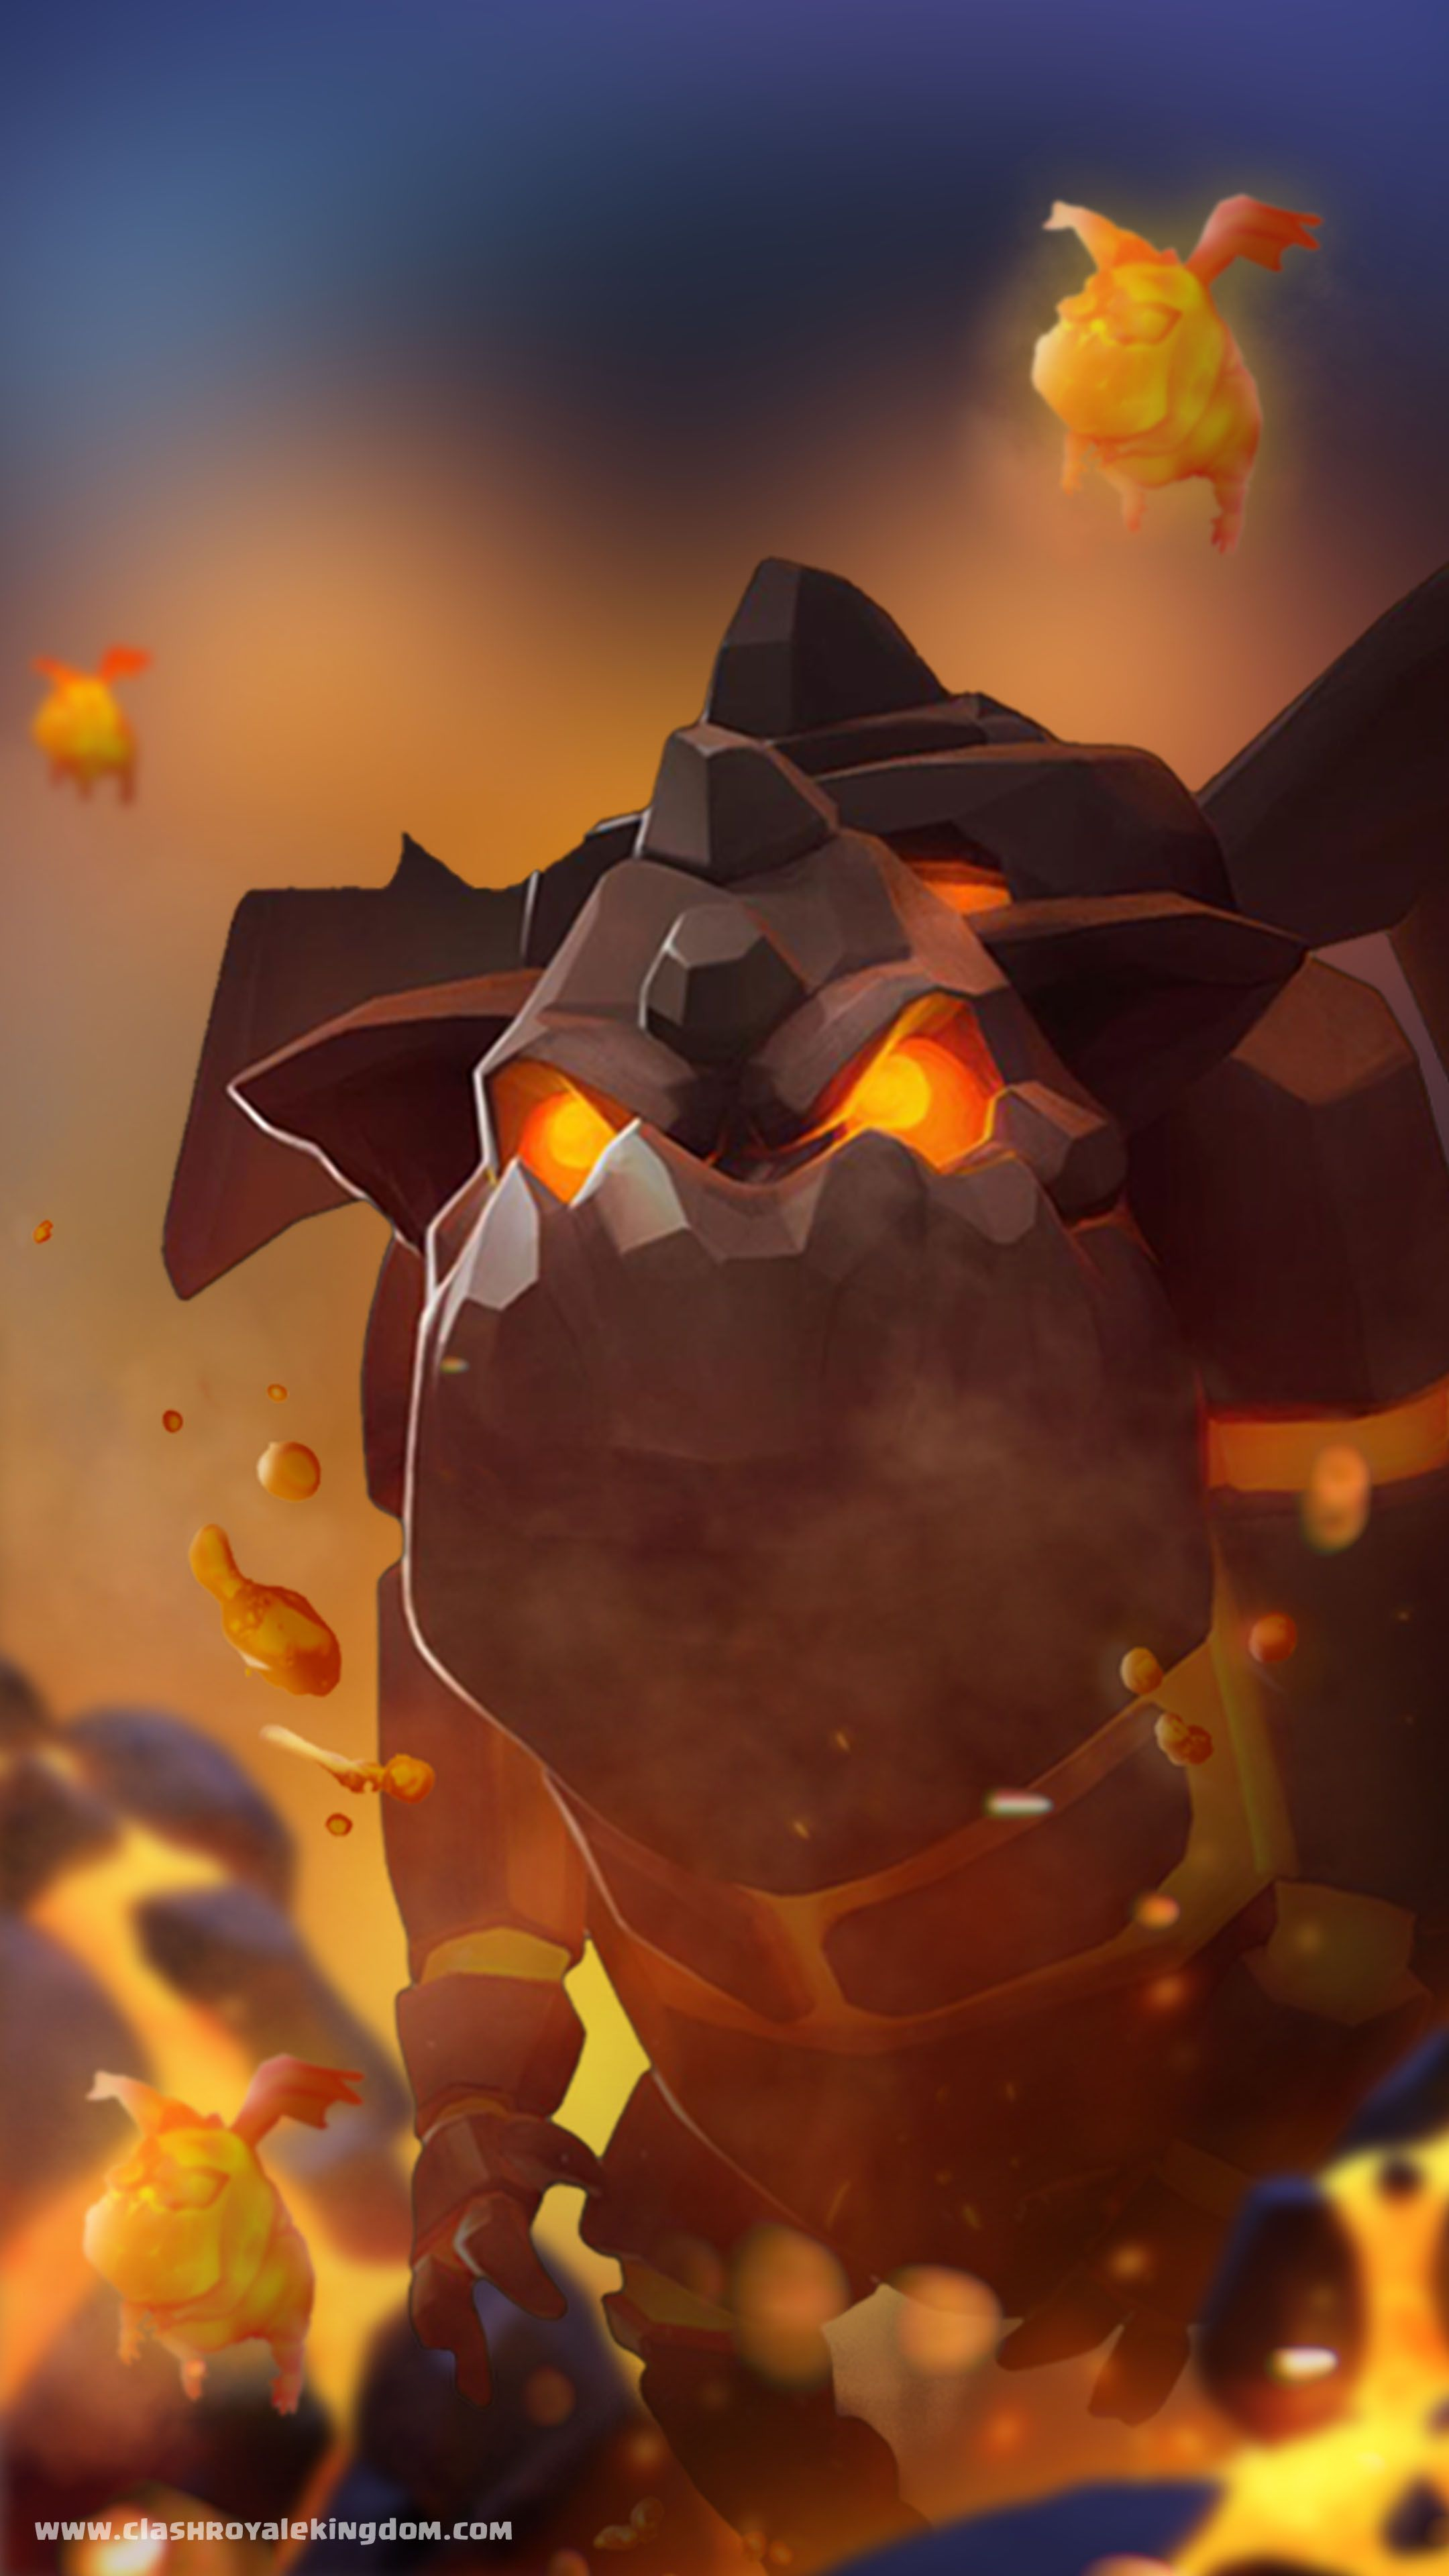 Pin On Supercell Hd Wallpaper